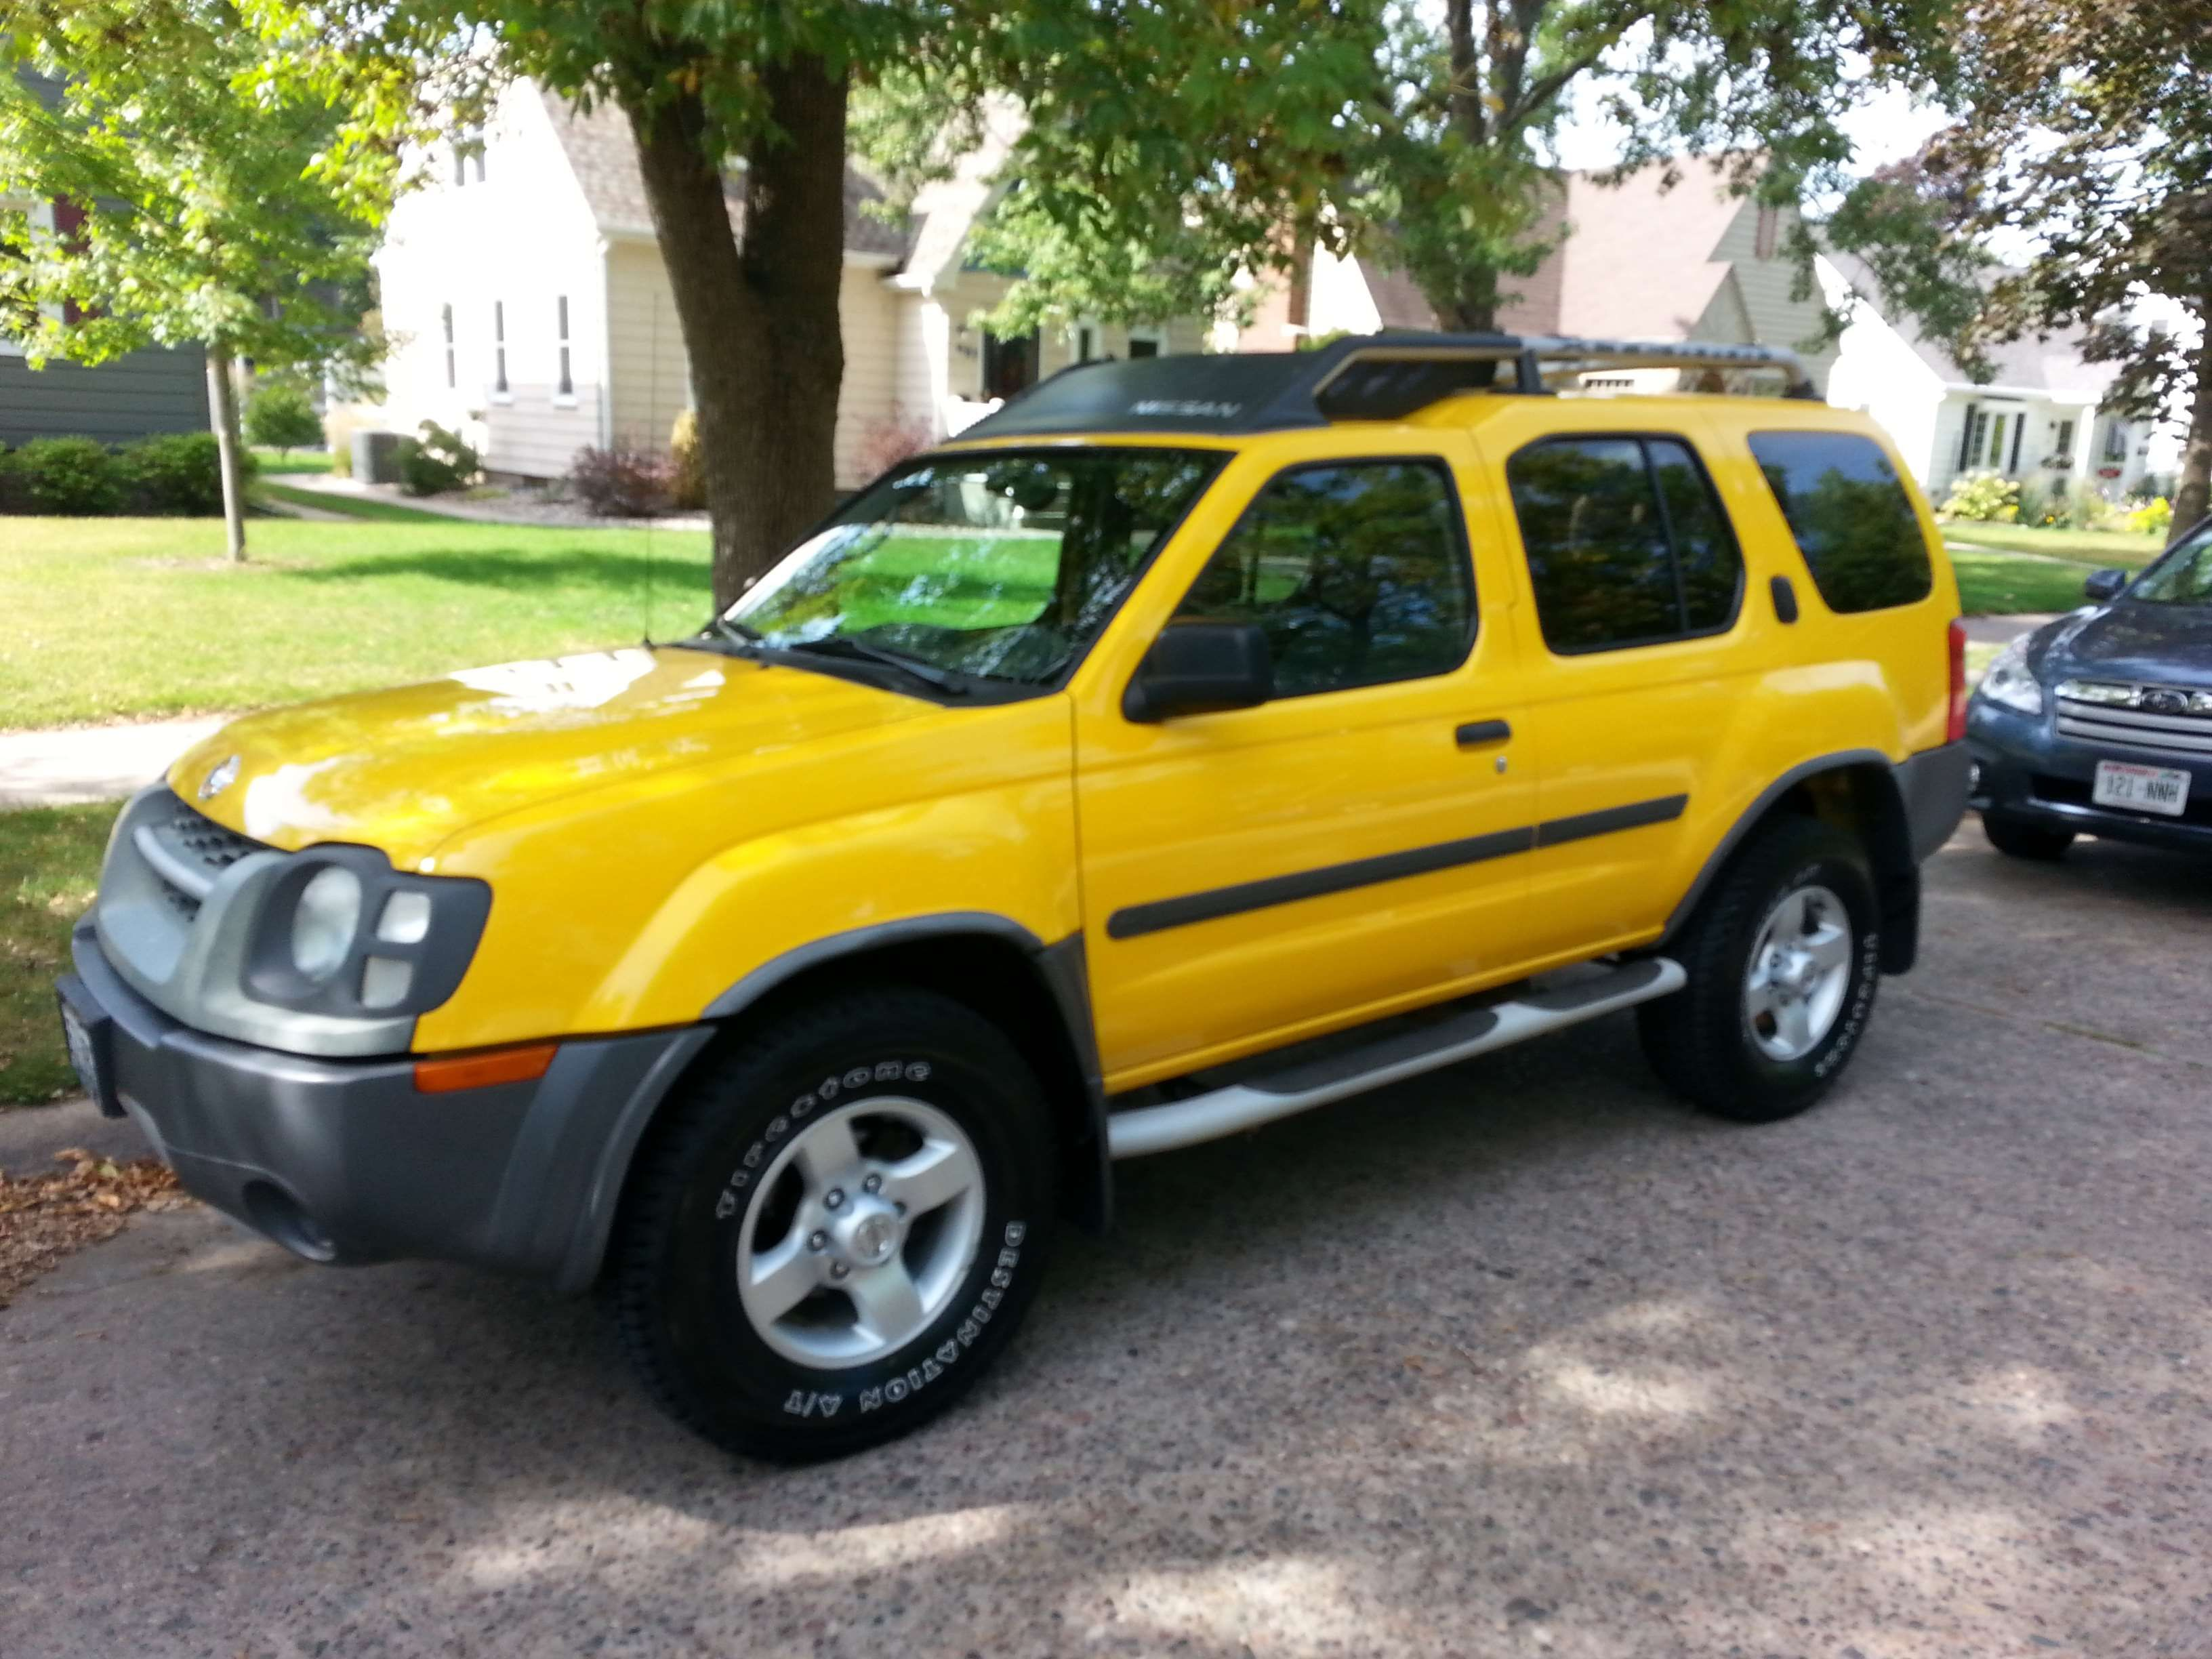 Make: Nissan Model: Xterra Year: 2004 Exterior Color: Yellow Interior Color: